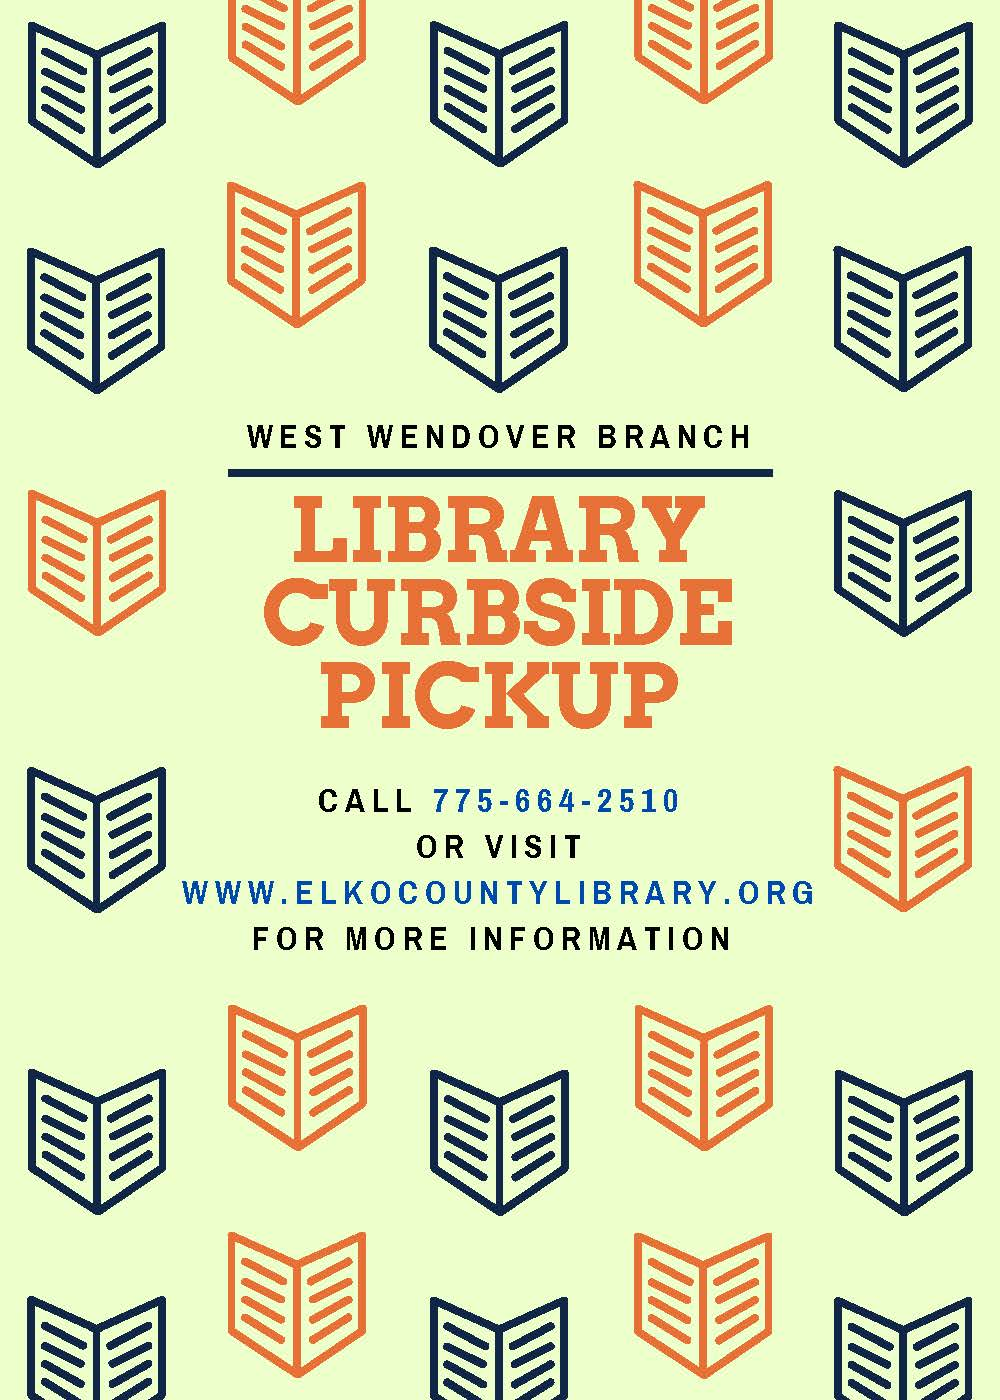 West Wendover Library Now Offering Curbside Pickup